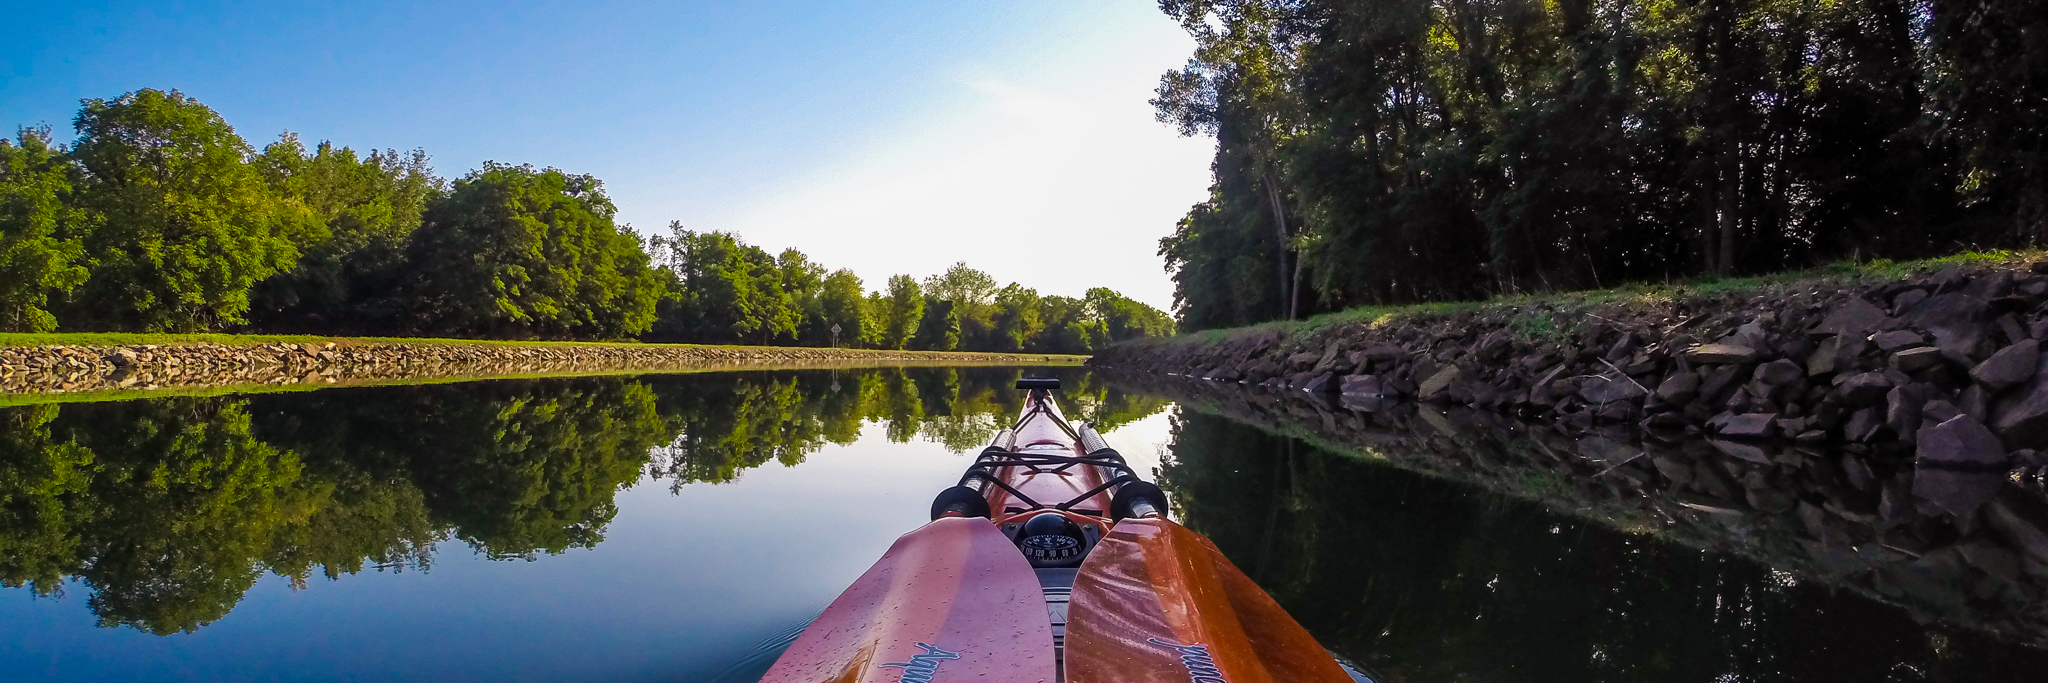 Chip MacAlpine, Erie Canal, Kayaking, Sally Supernova, Wilderness Systems